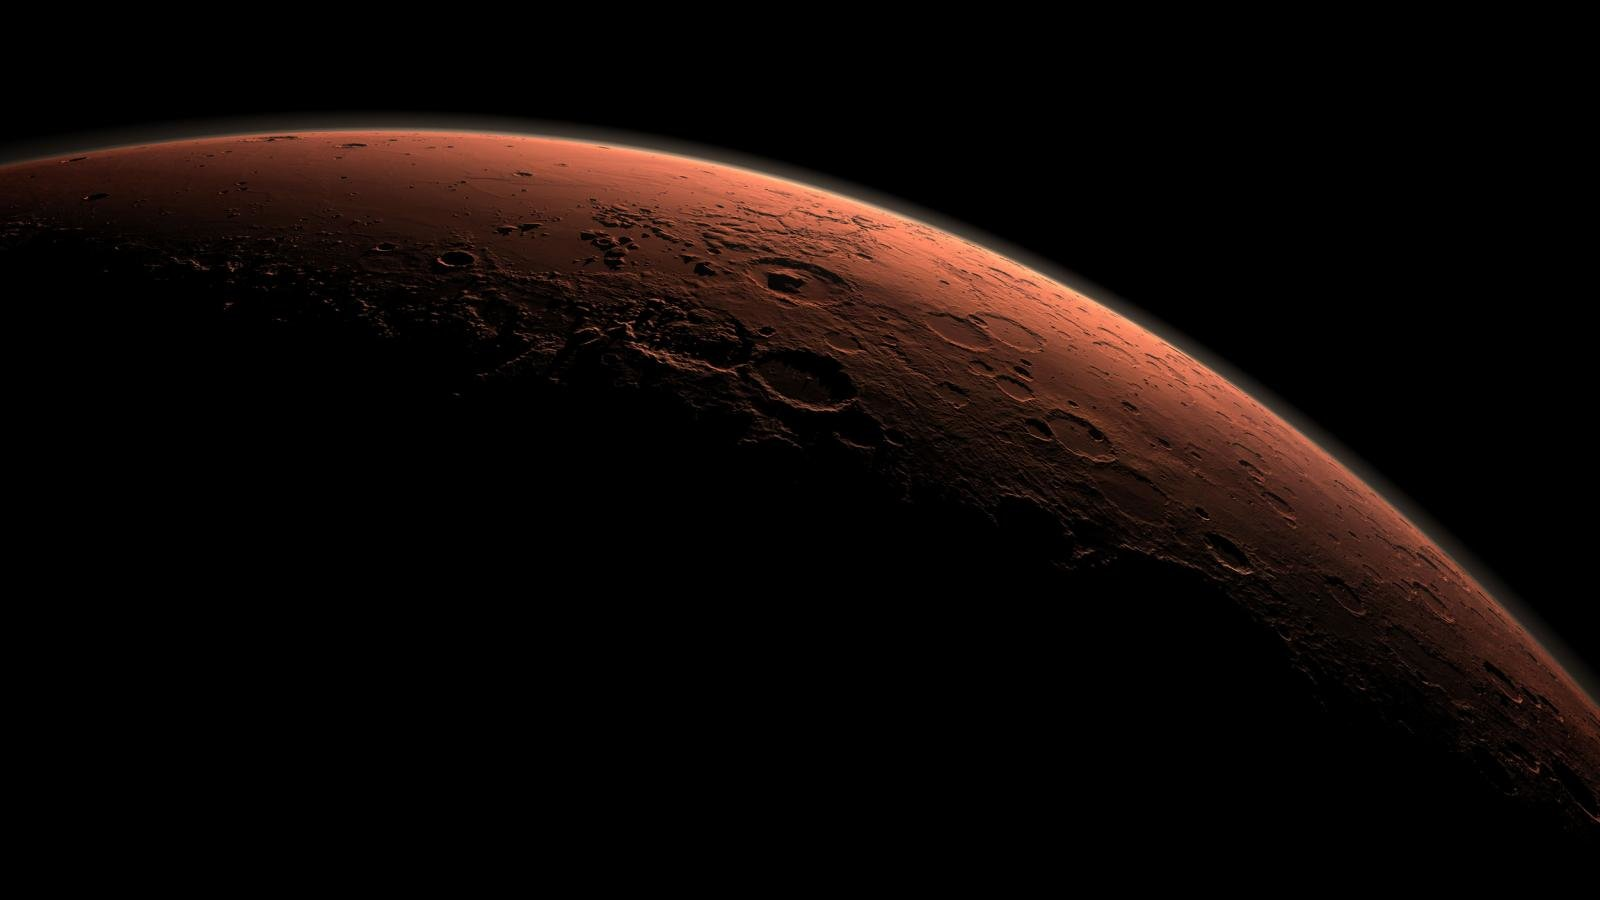 Download hd 1600x900 Mars computer wallpaper ID:118570 for free